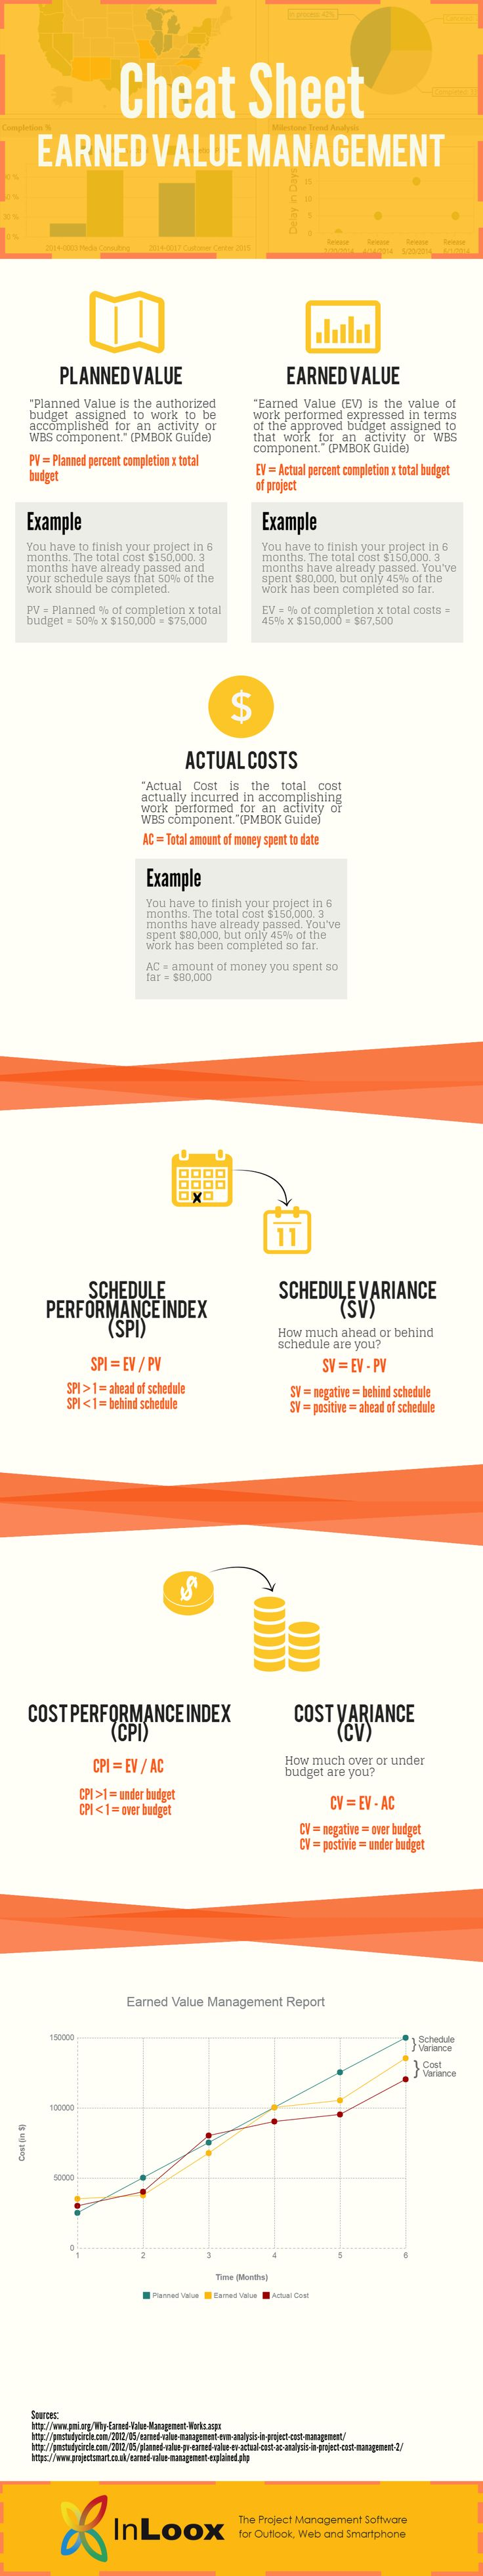 [INFOGRAPHIC] Earned Value Management (EVM) is a widely used project management process and technique to measure project performance. It's an extremely important part of the PMP exam, so project managers wanting to get certified need to understand what EVM is. This is why created this concise 'cheat sheet'.